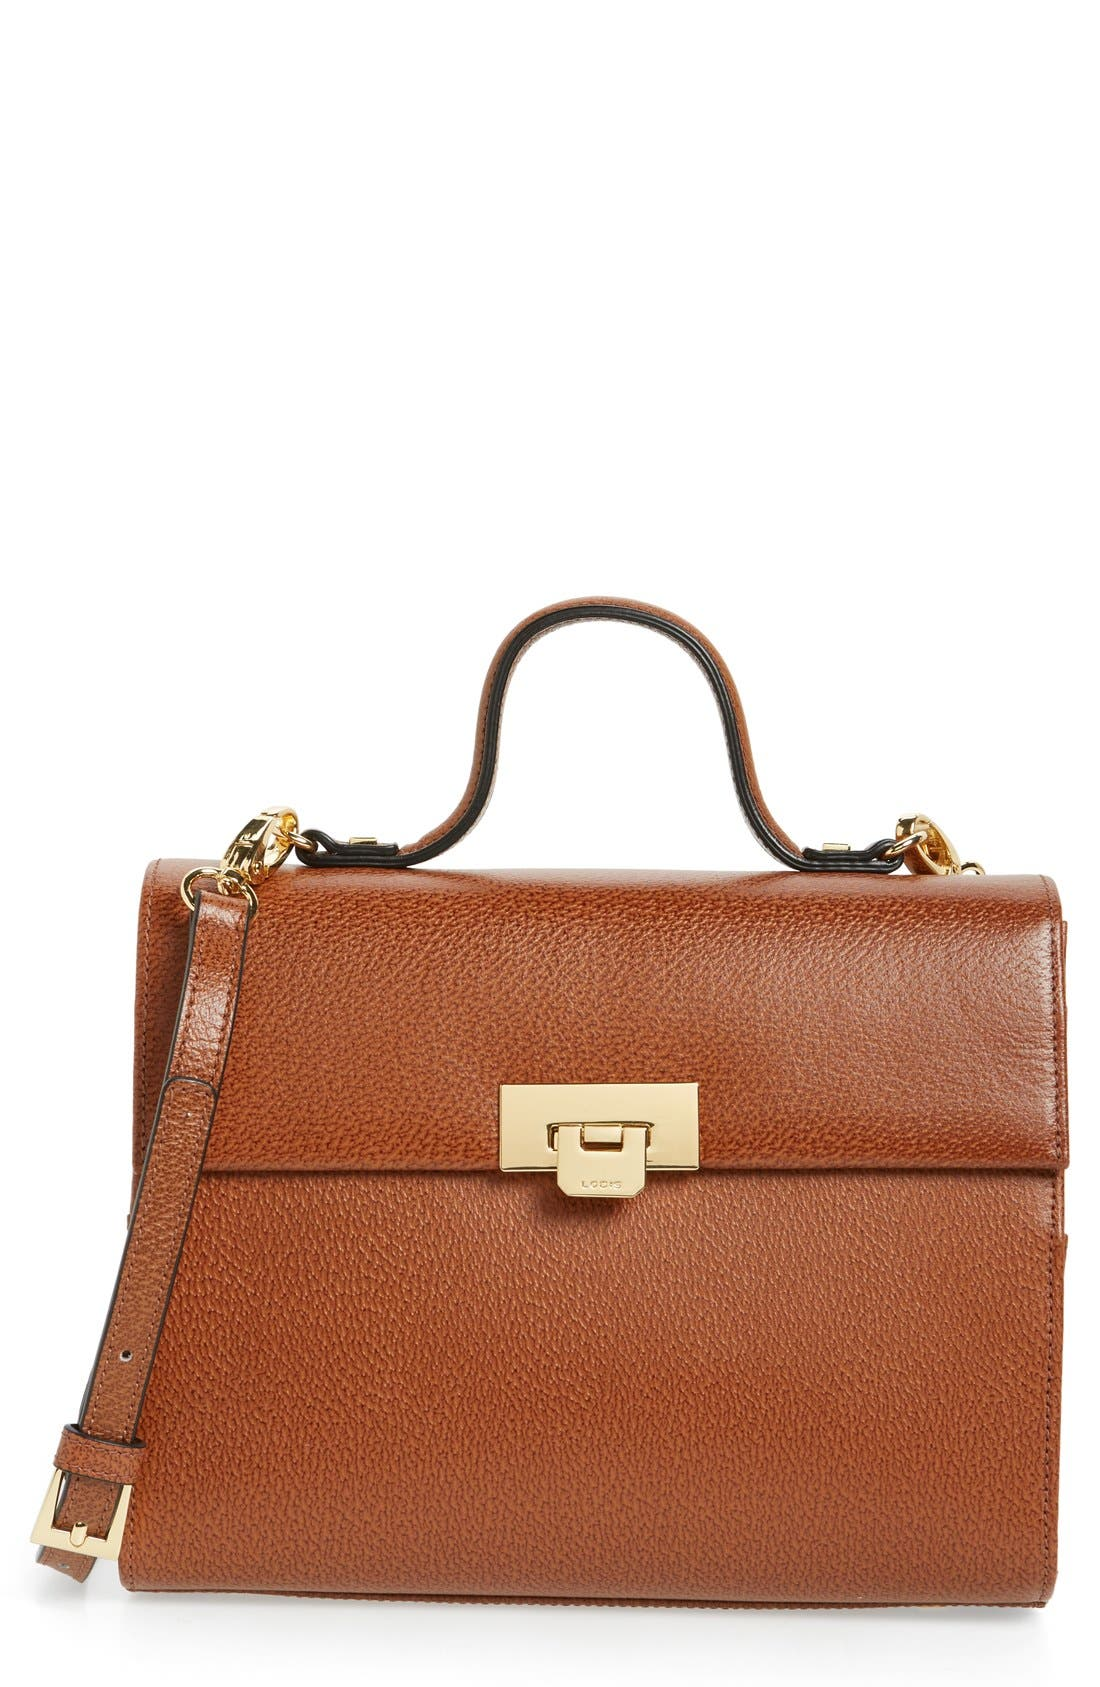 Lodis Medium Bree Leather Top Handle Satchel